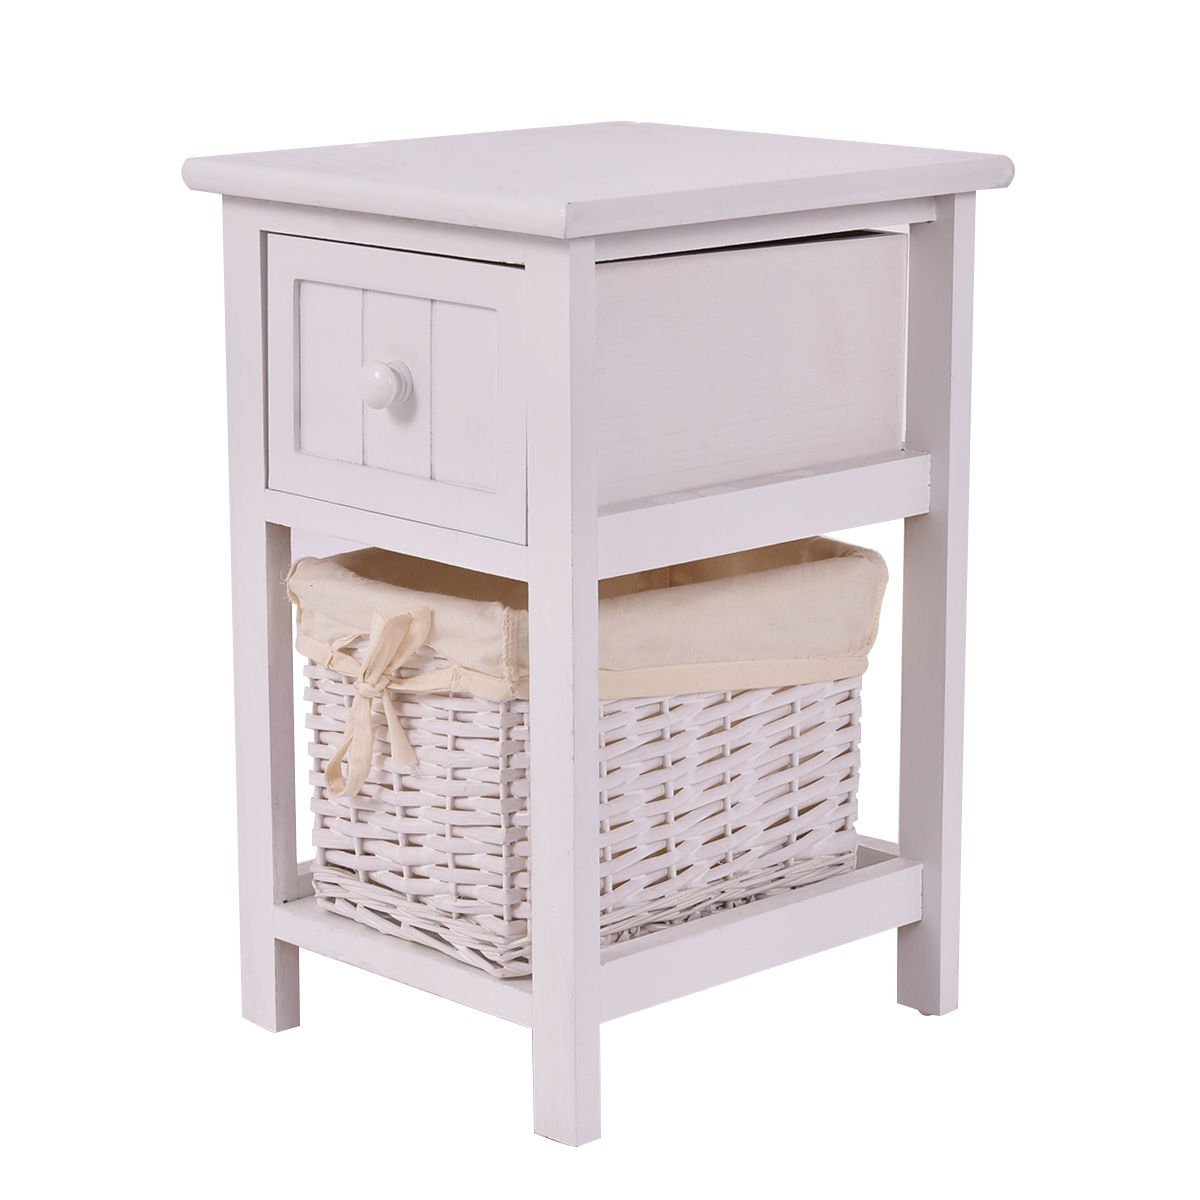 Giantex Mini Night Stand 2 Layer 1 Drawer Bedside End Table Organizer Bedroom Wood W/Basket (1)